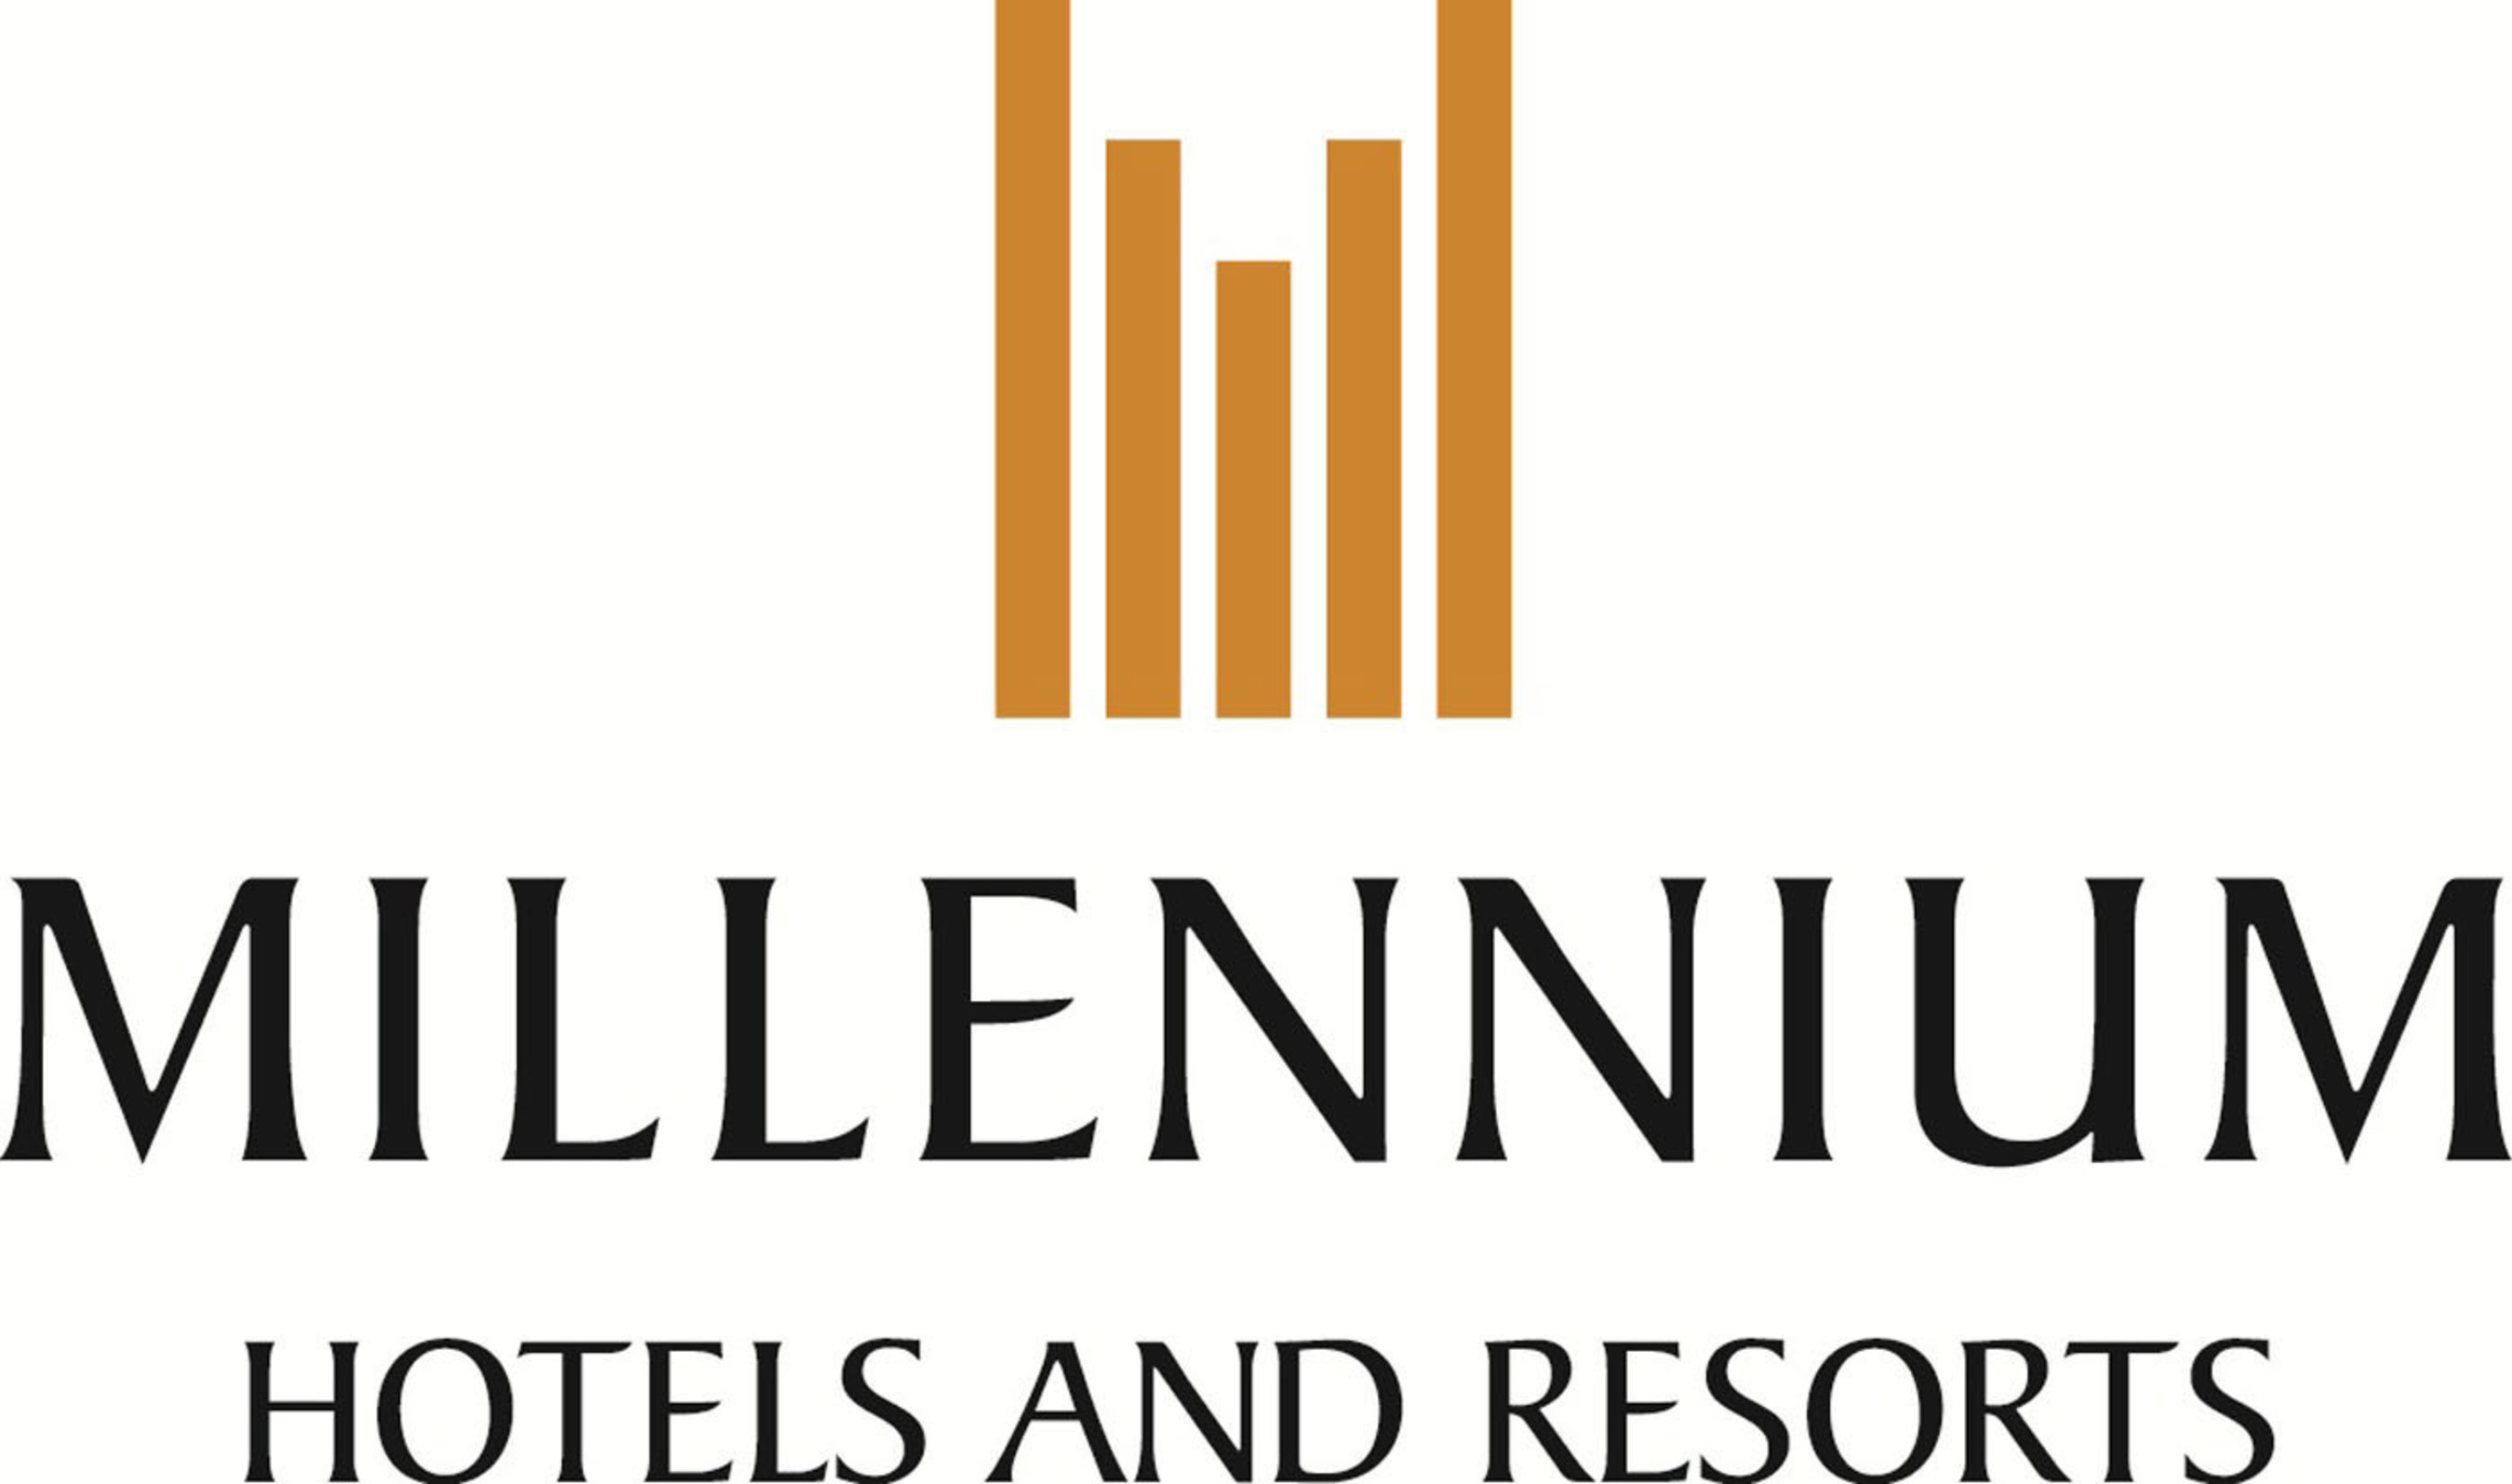 Millennium Hotels and Resorts North America.